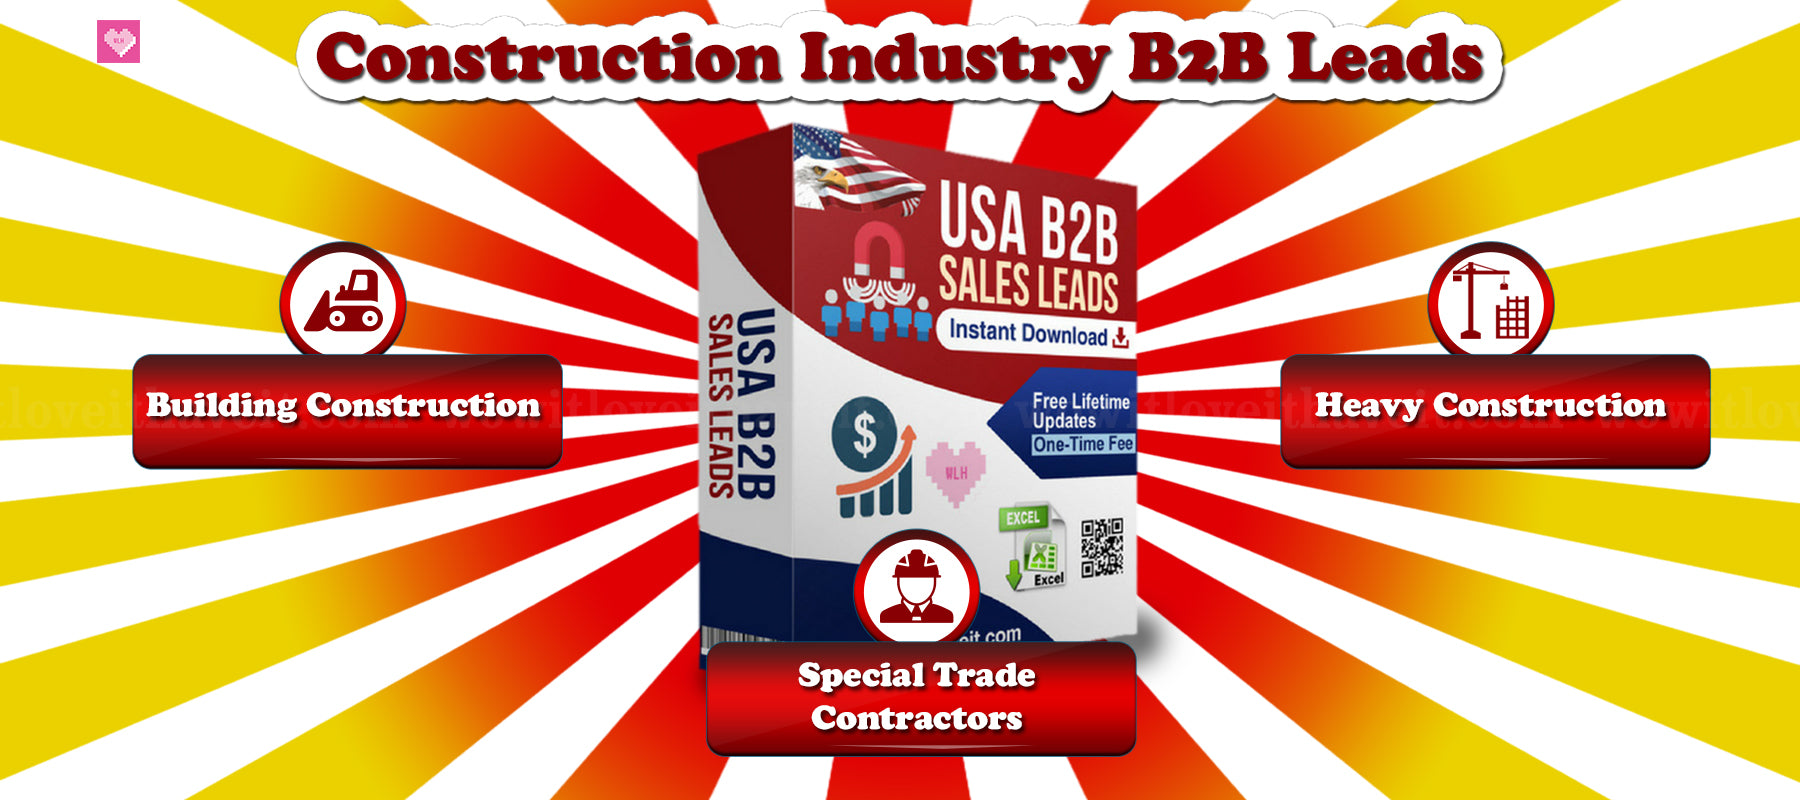 Construction Companies List and Email Database